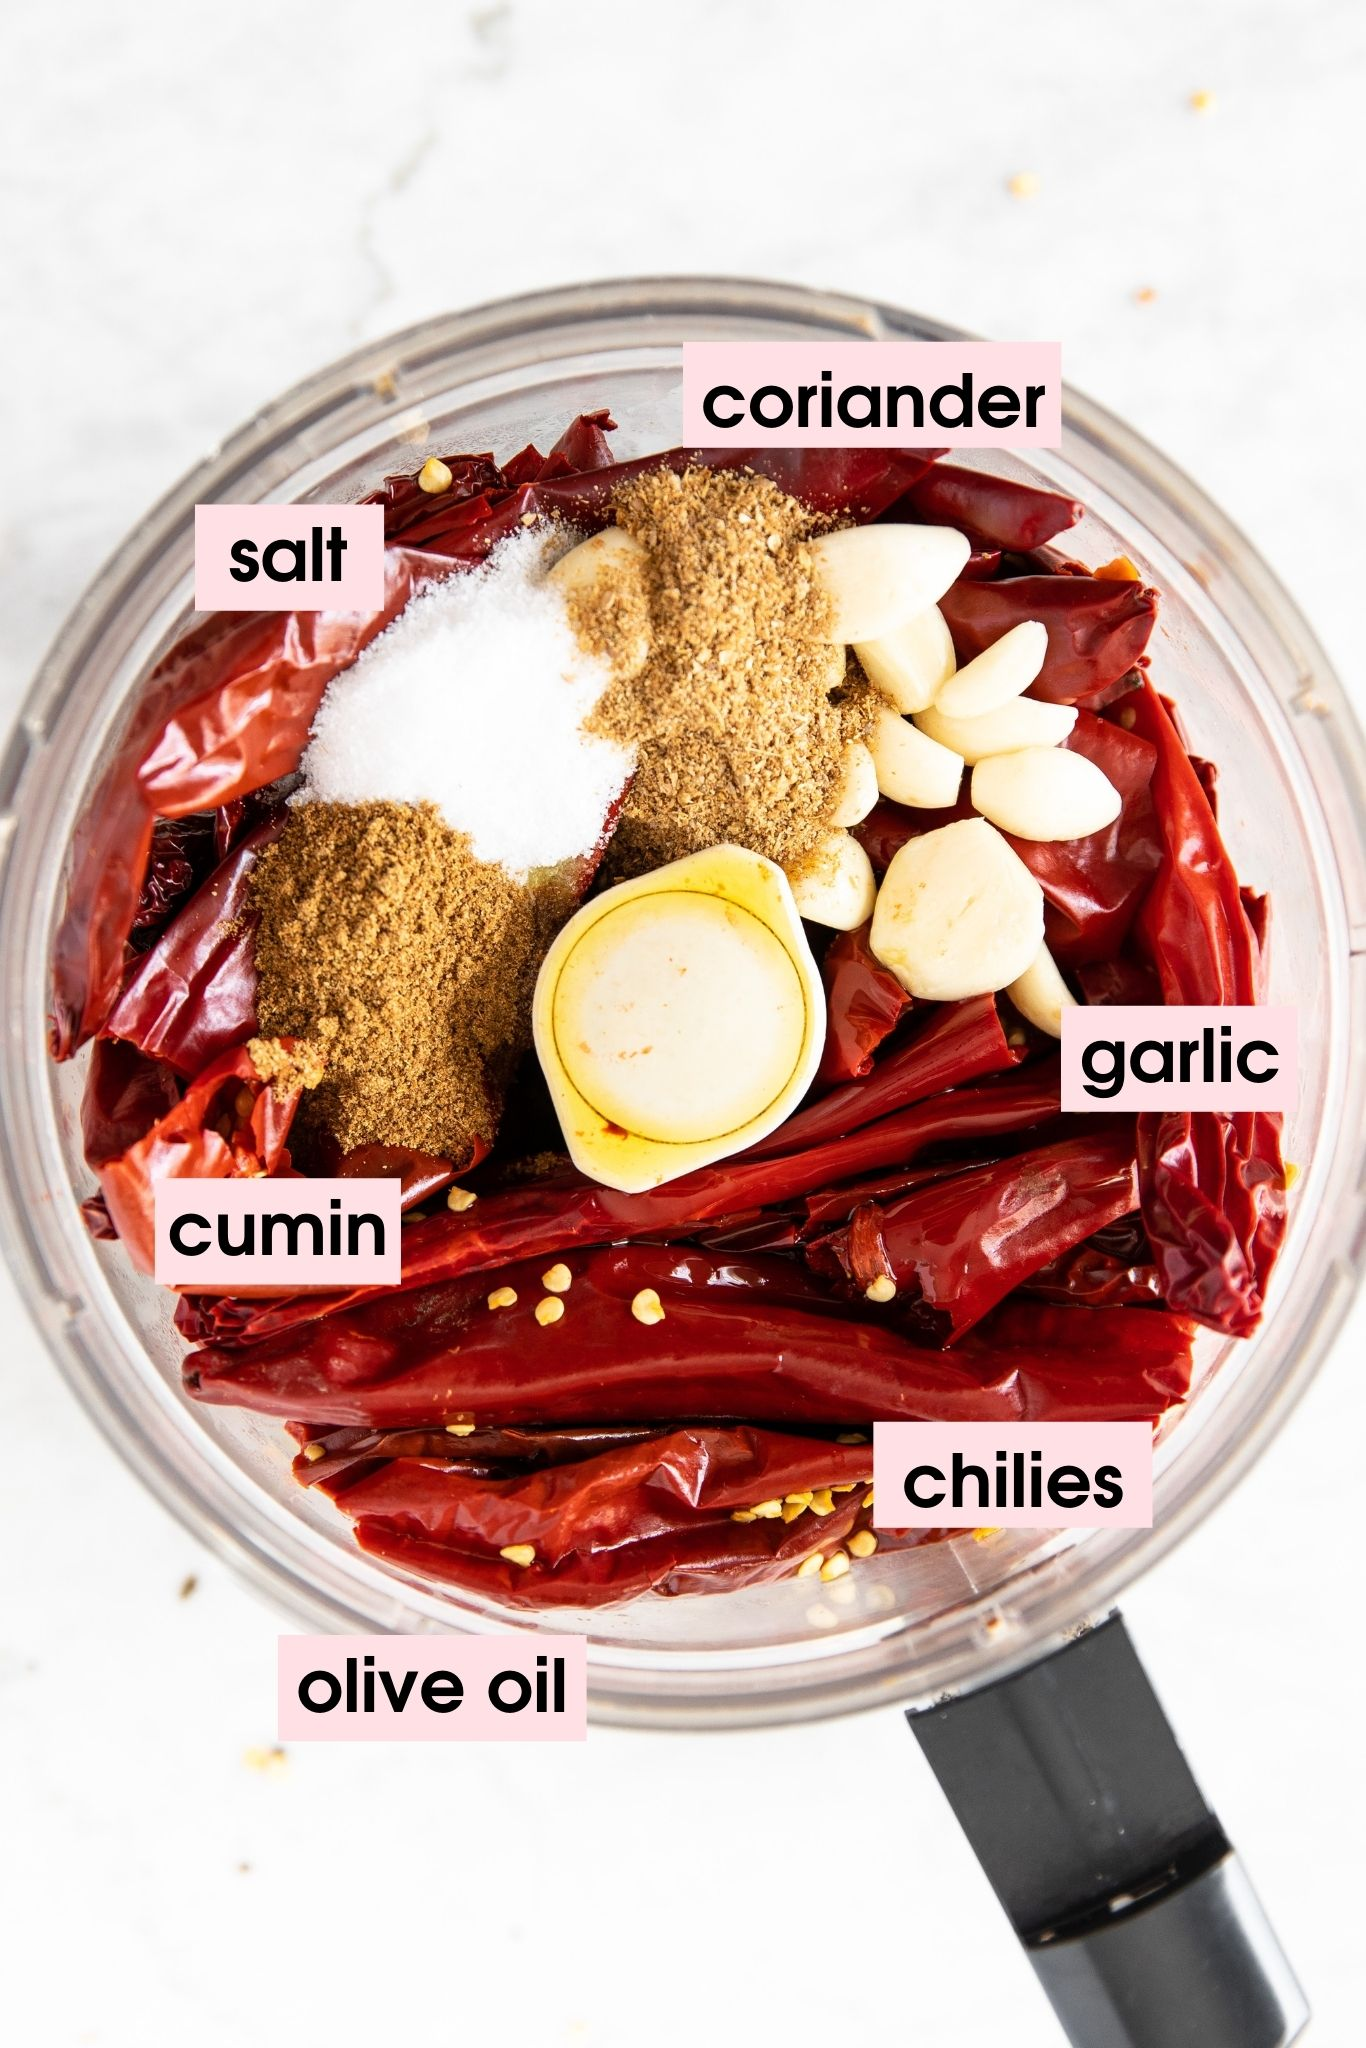 Photo showing how to make harissa paste in a food processor using dried chillies, garlic, cumin, coriander and olive oil| from verygoodcook.com